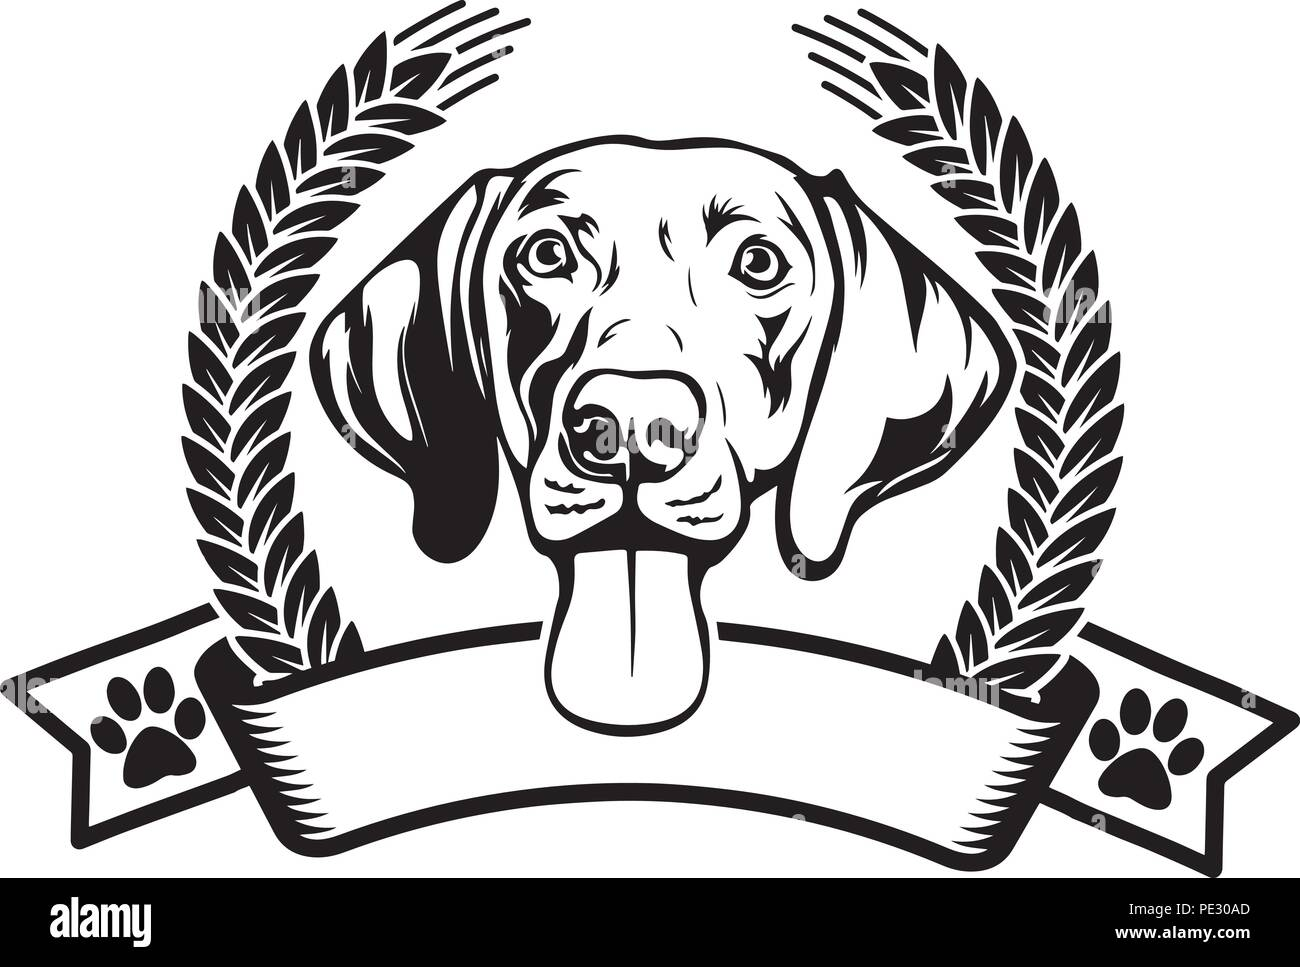 Weimaraner Dog Breed Pet Puppy Isolated Head Face Stock Vector